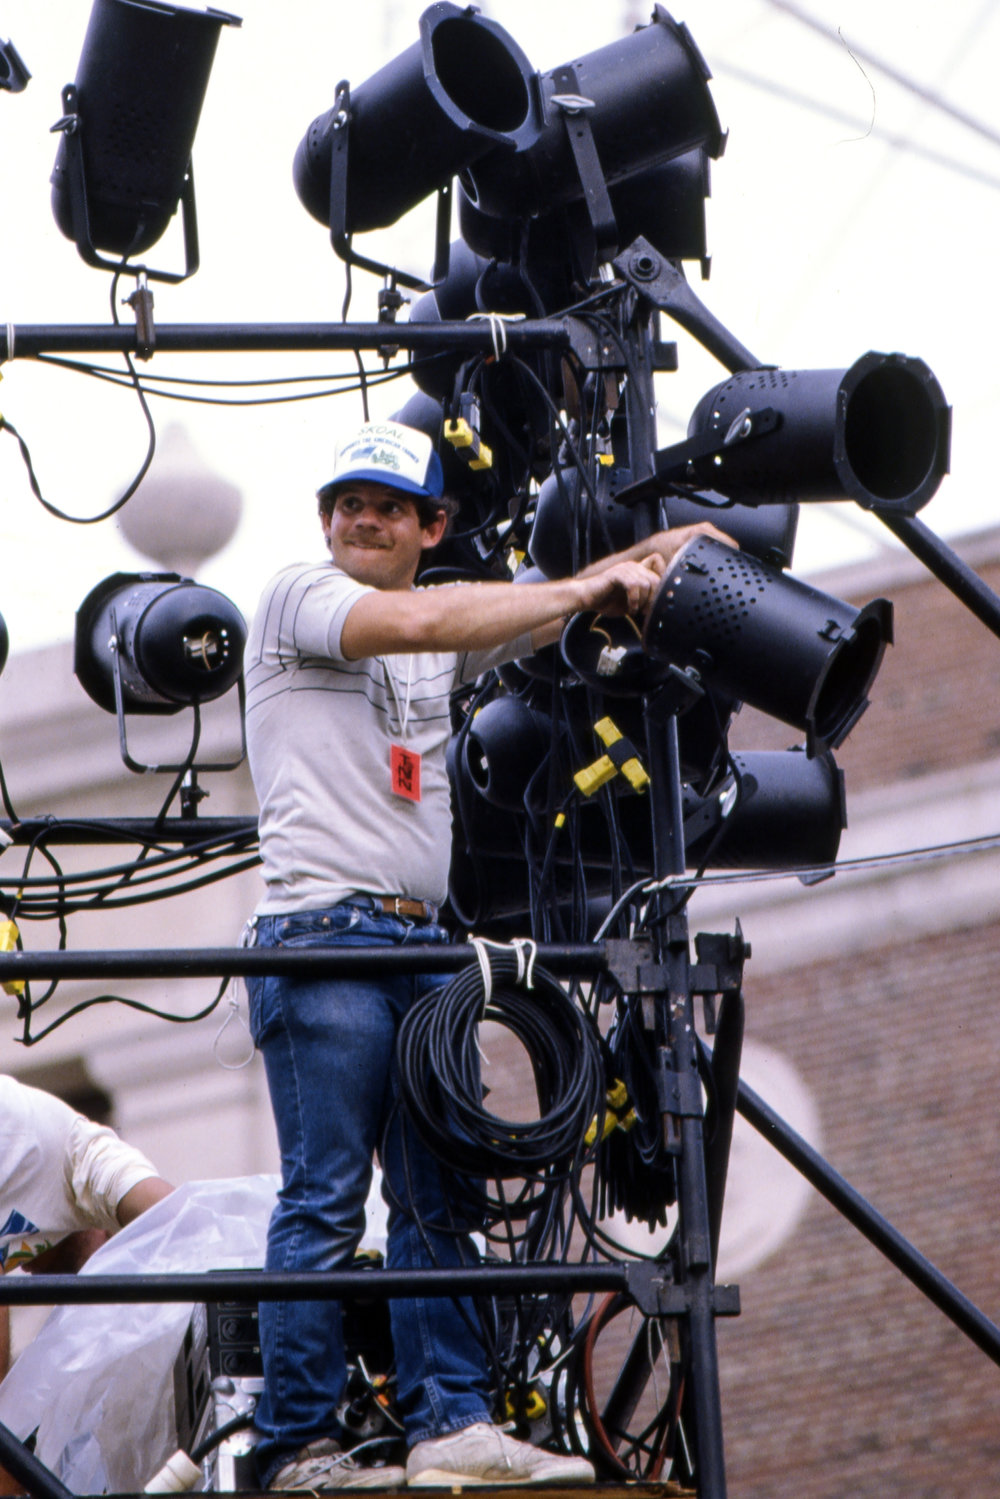 A lighting technician at work during the Farm Aid concert at Memorial Stadium in Champaign, Ill. Sept. 22, 1985. [File/The State Journal-Register]